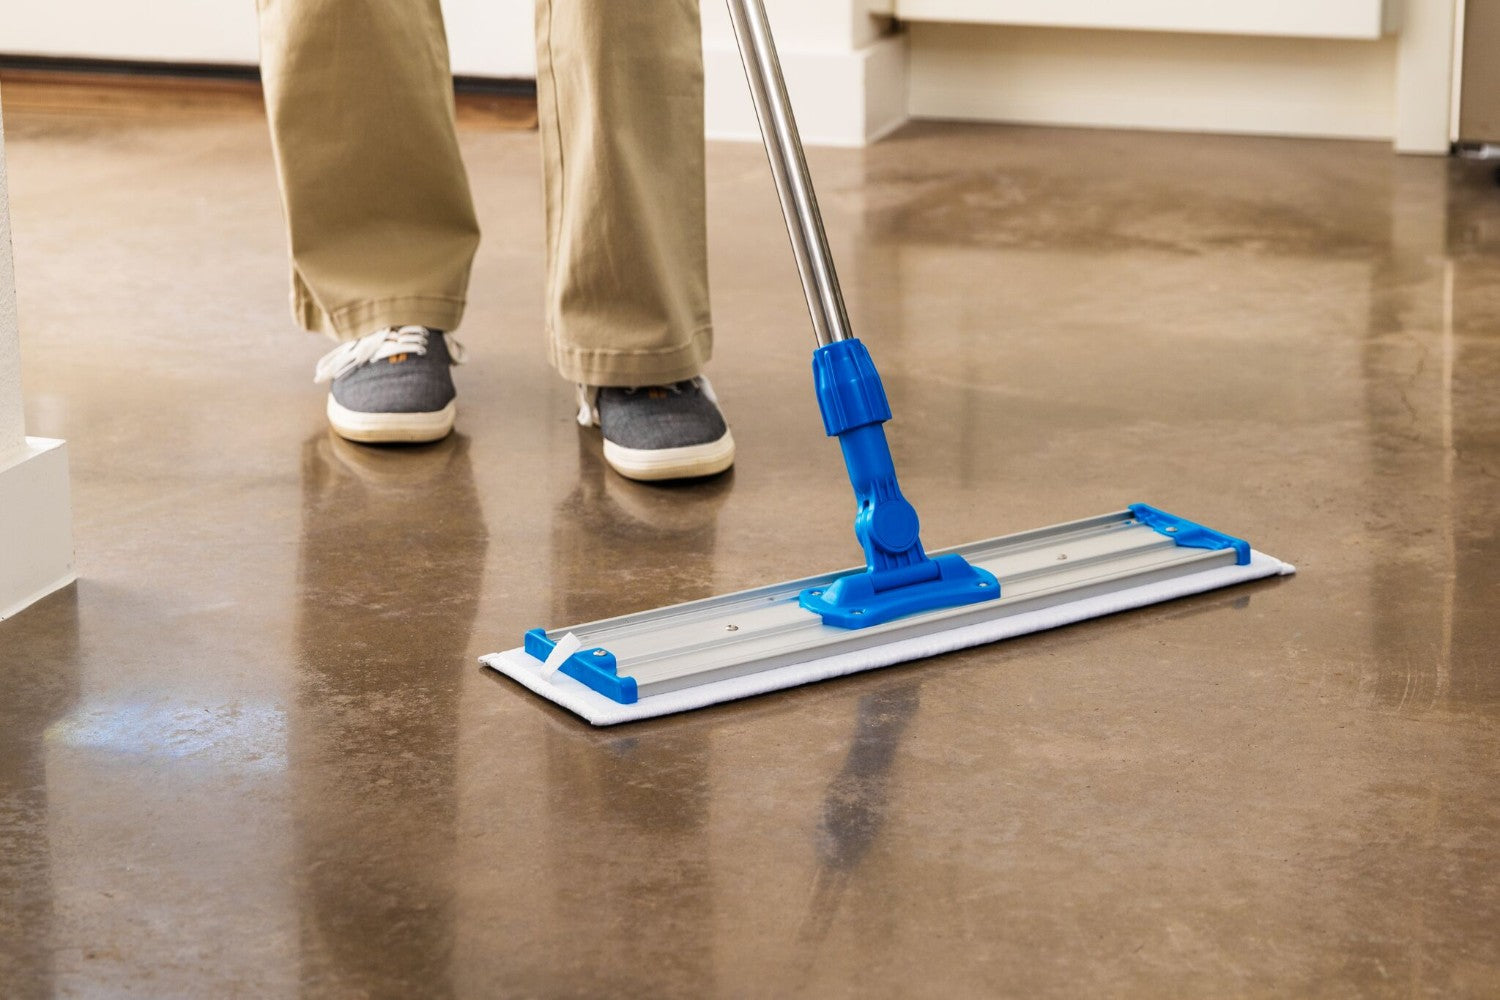 20 Inch Pad Featured. 18 inch microfiber scrubber mop pad for concrete floors.